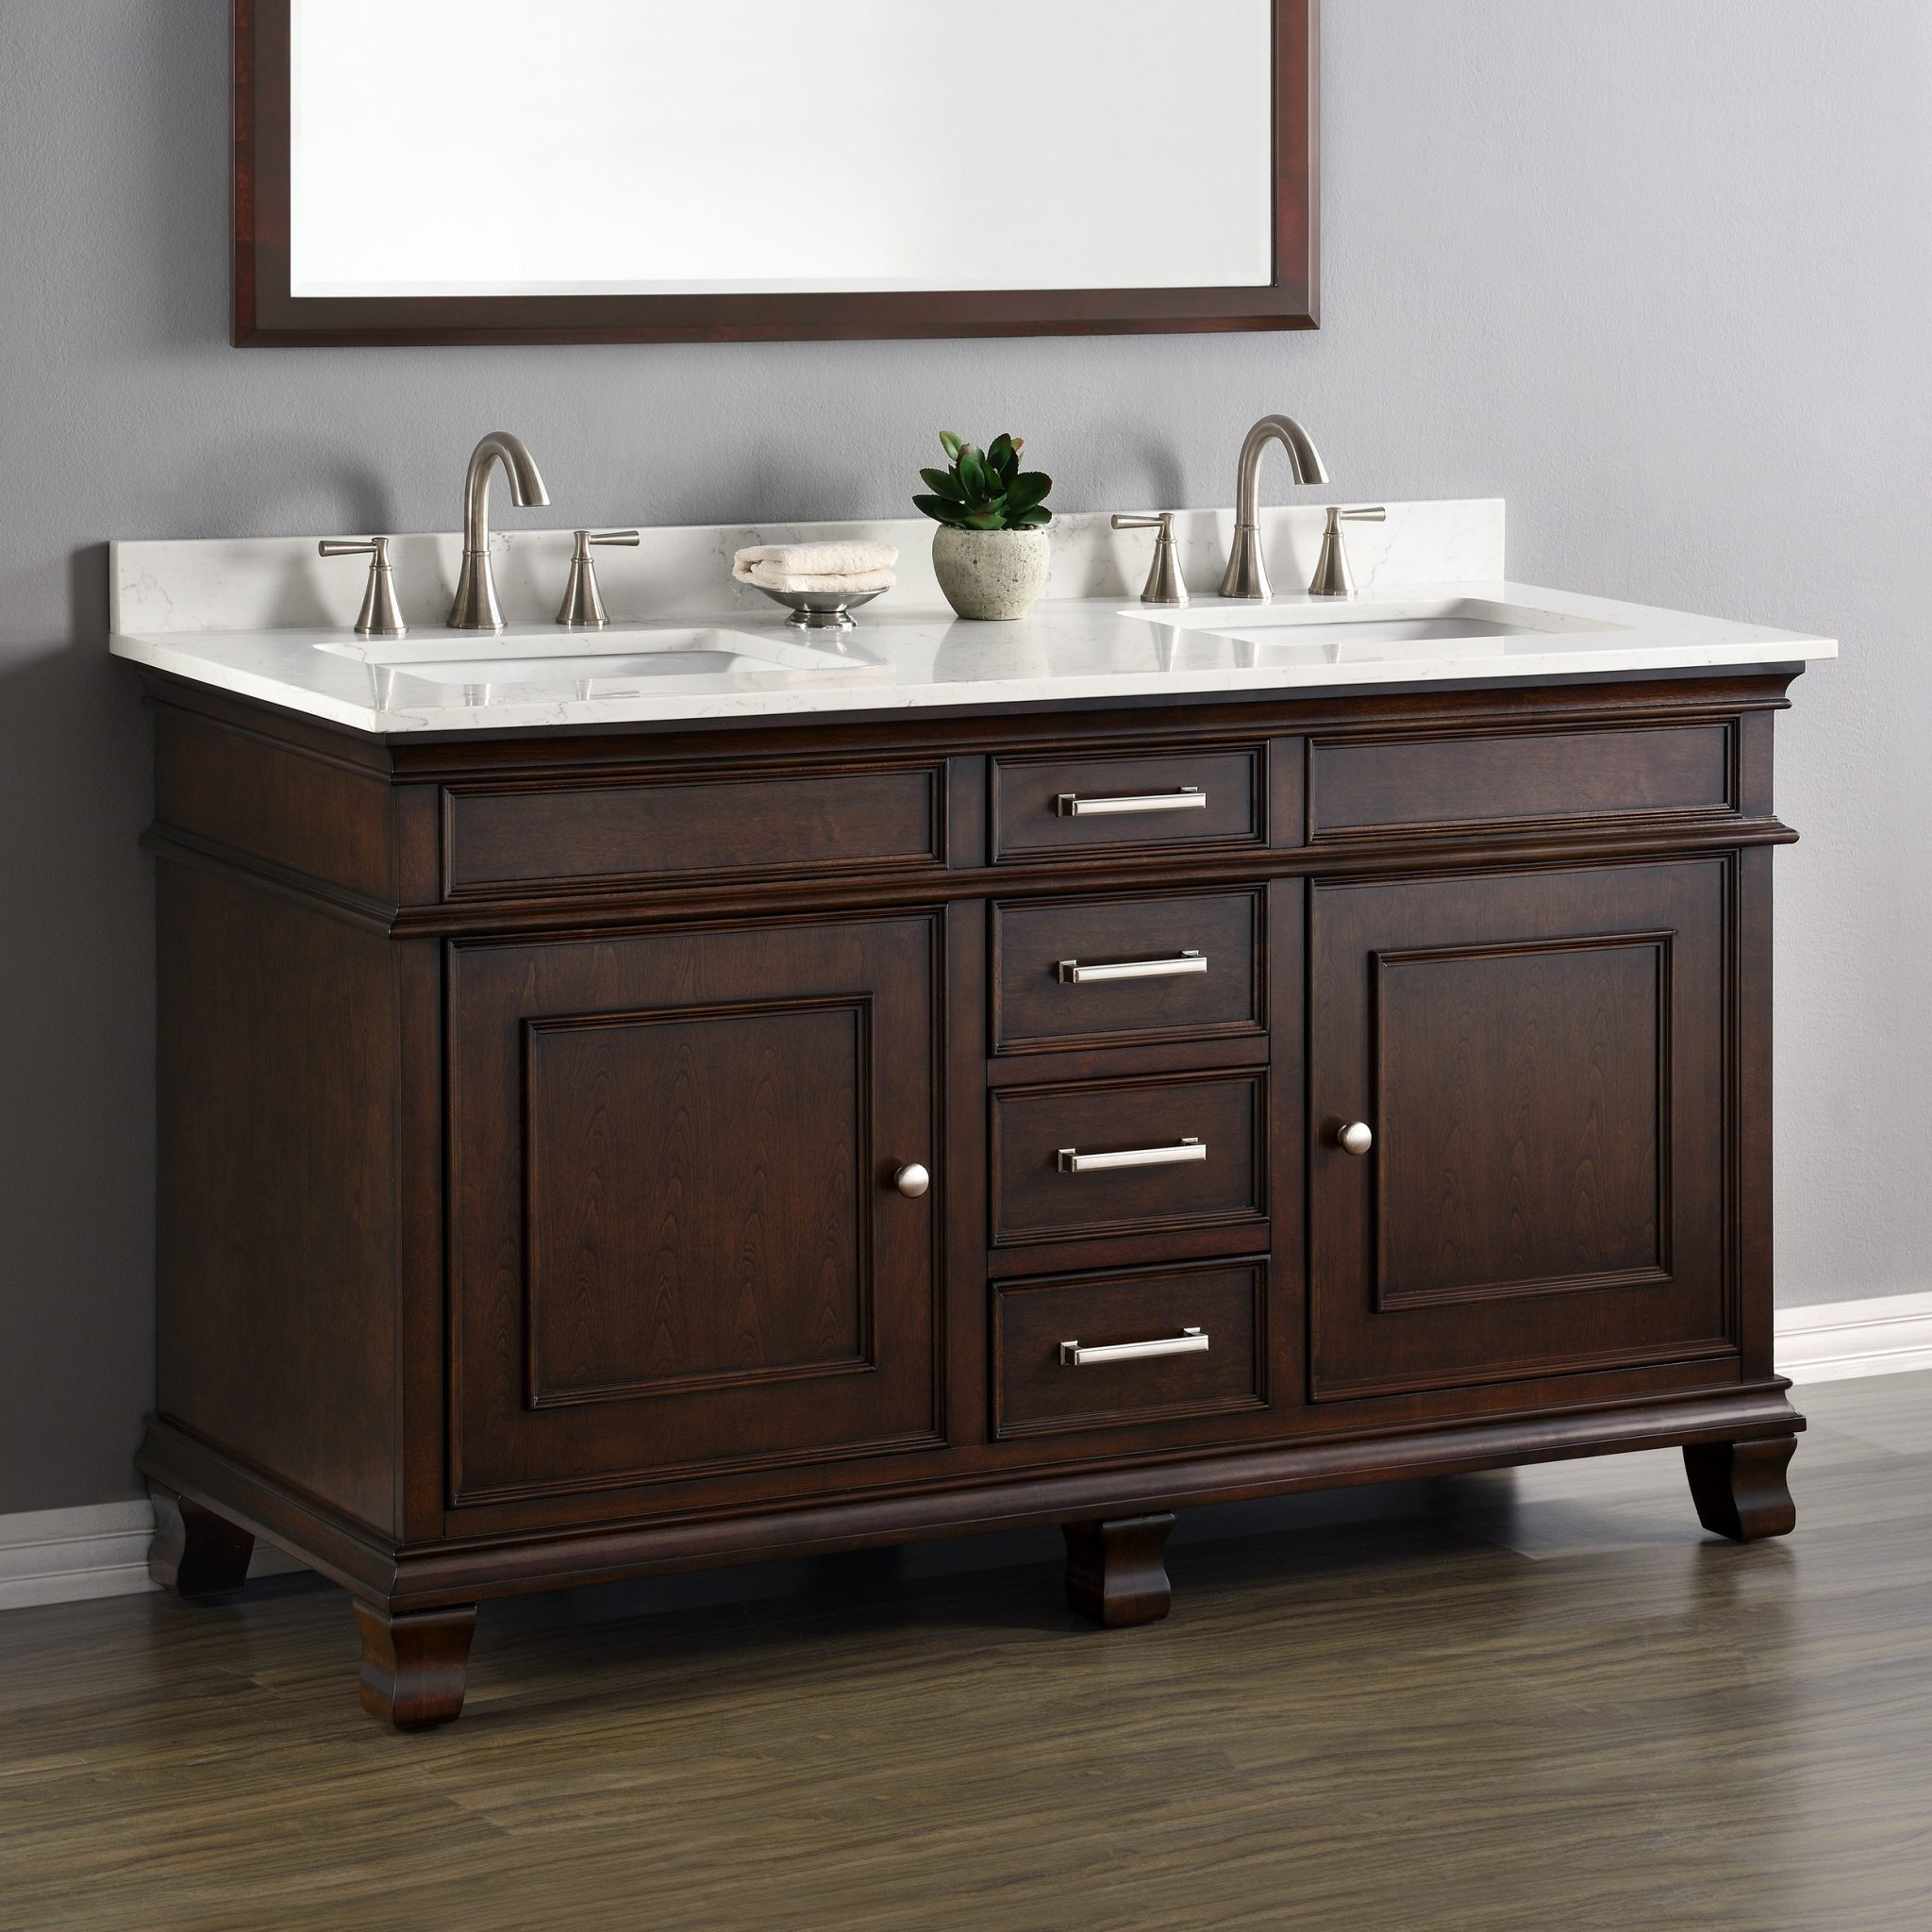 virtu double caroline vanity wmro white bathroom md set in usa estate wh